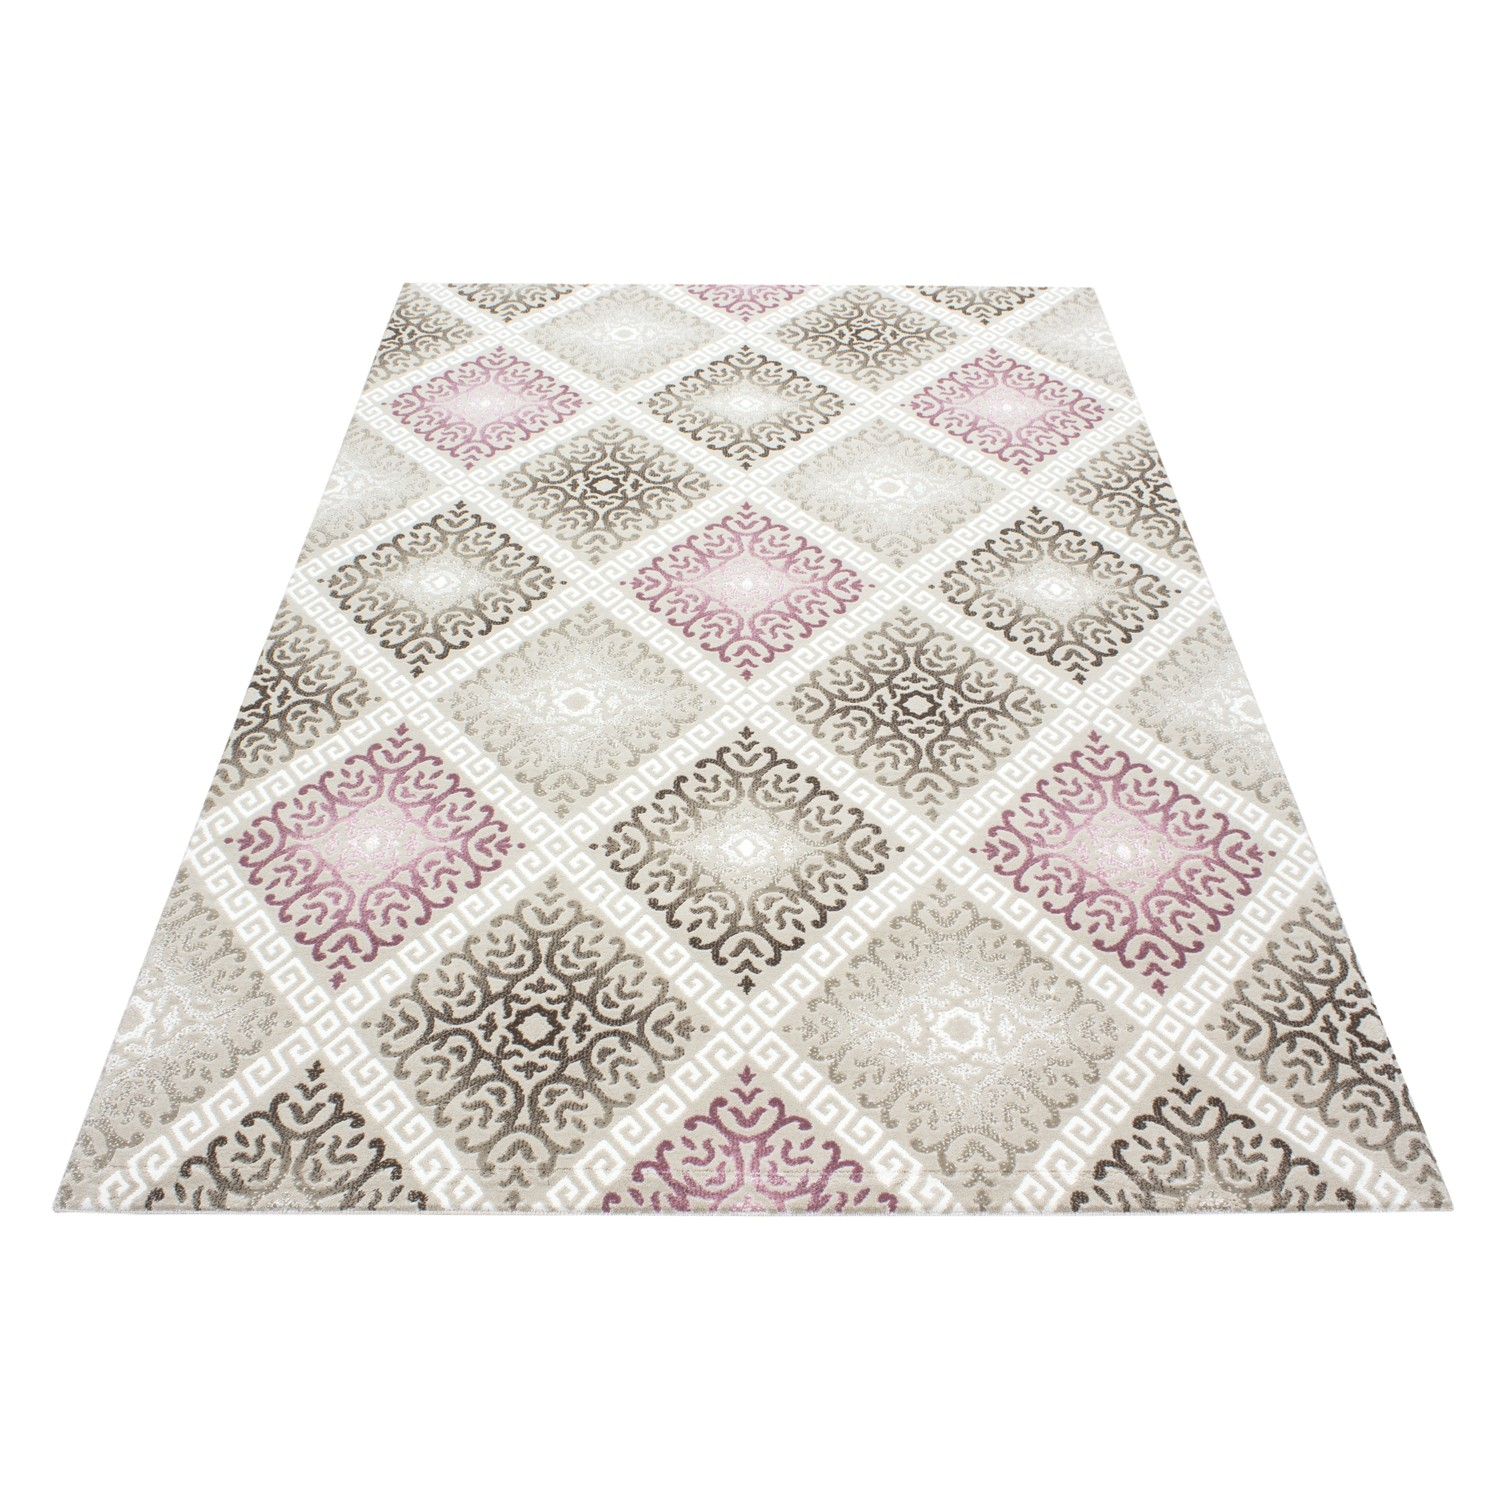 Tapis Salon Original Tapis Salon Original Maison Design Wiblia